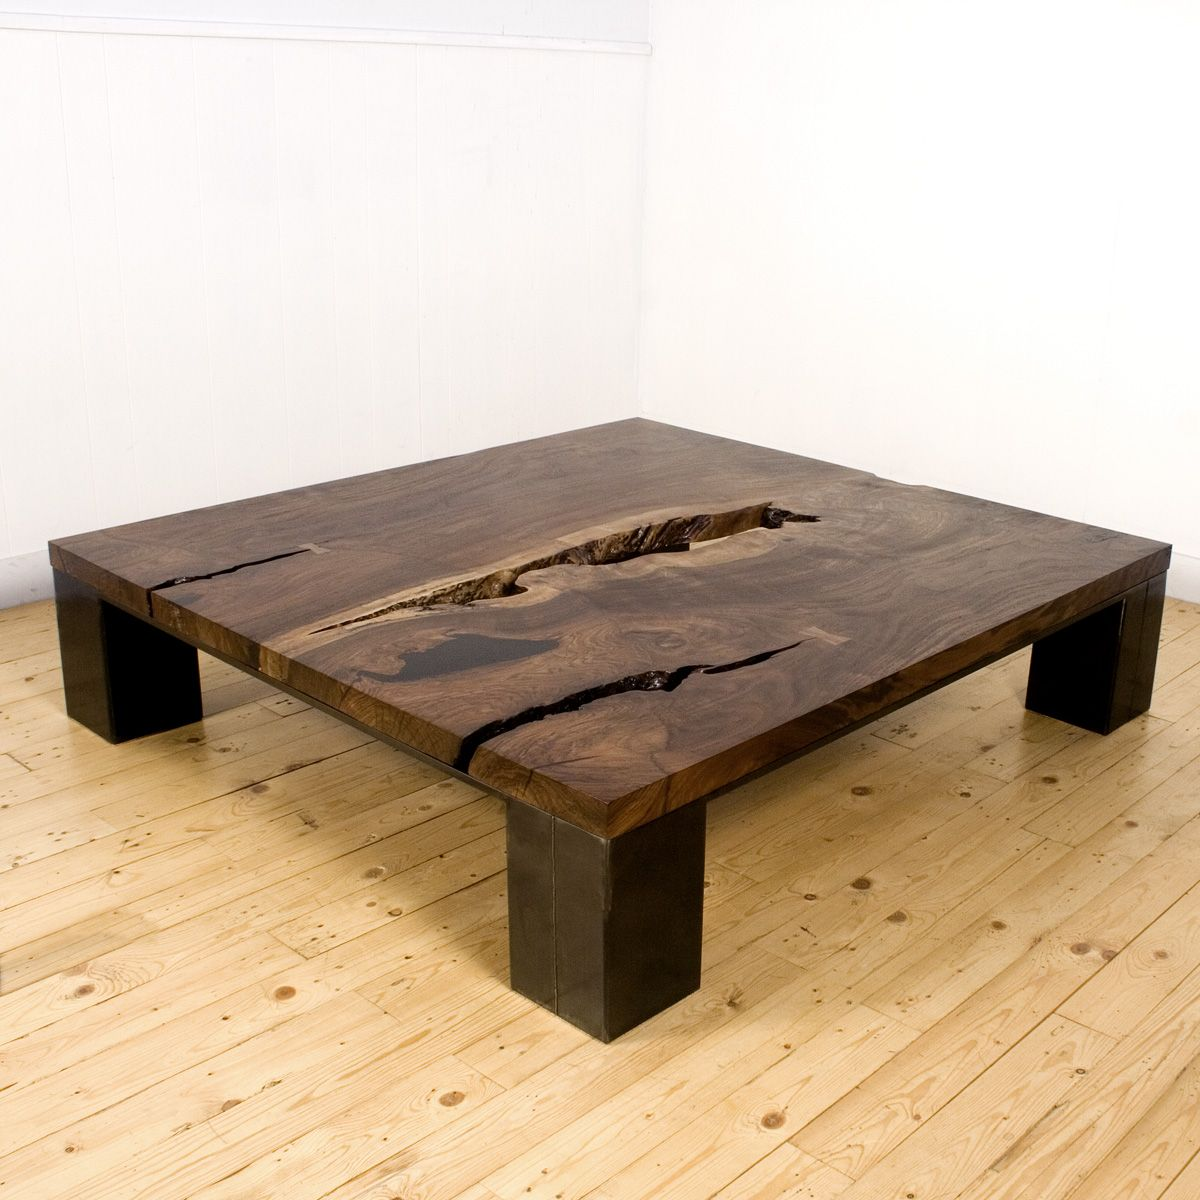 Couchtisch Eichenbohlen 2nd Choice Coffee Table Furniture Möbel Couchtisch Tisch